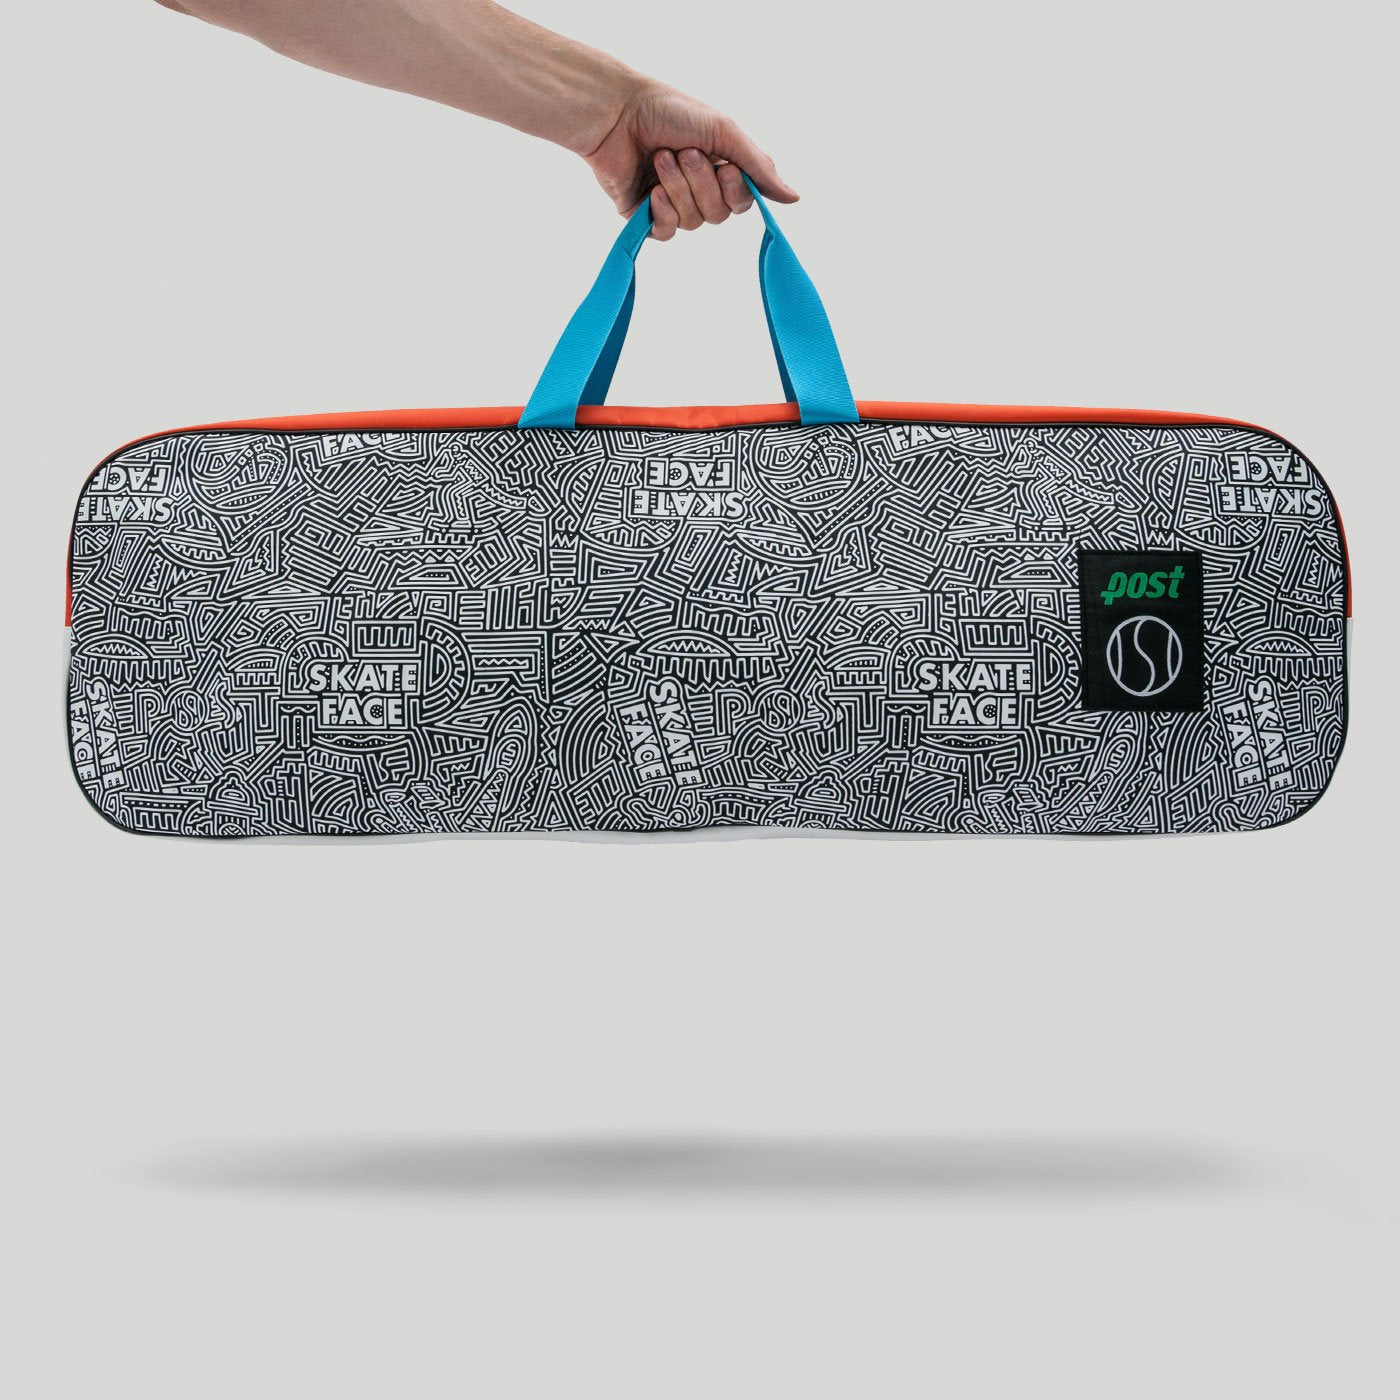 Post Tennis Anyone Skate Face Board Bag